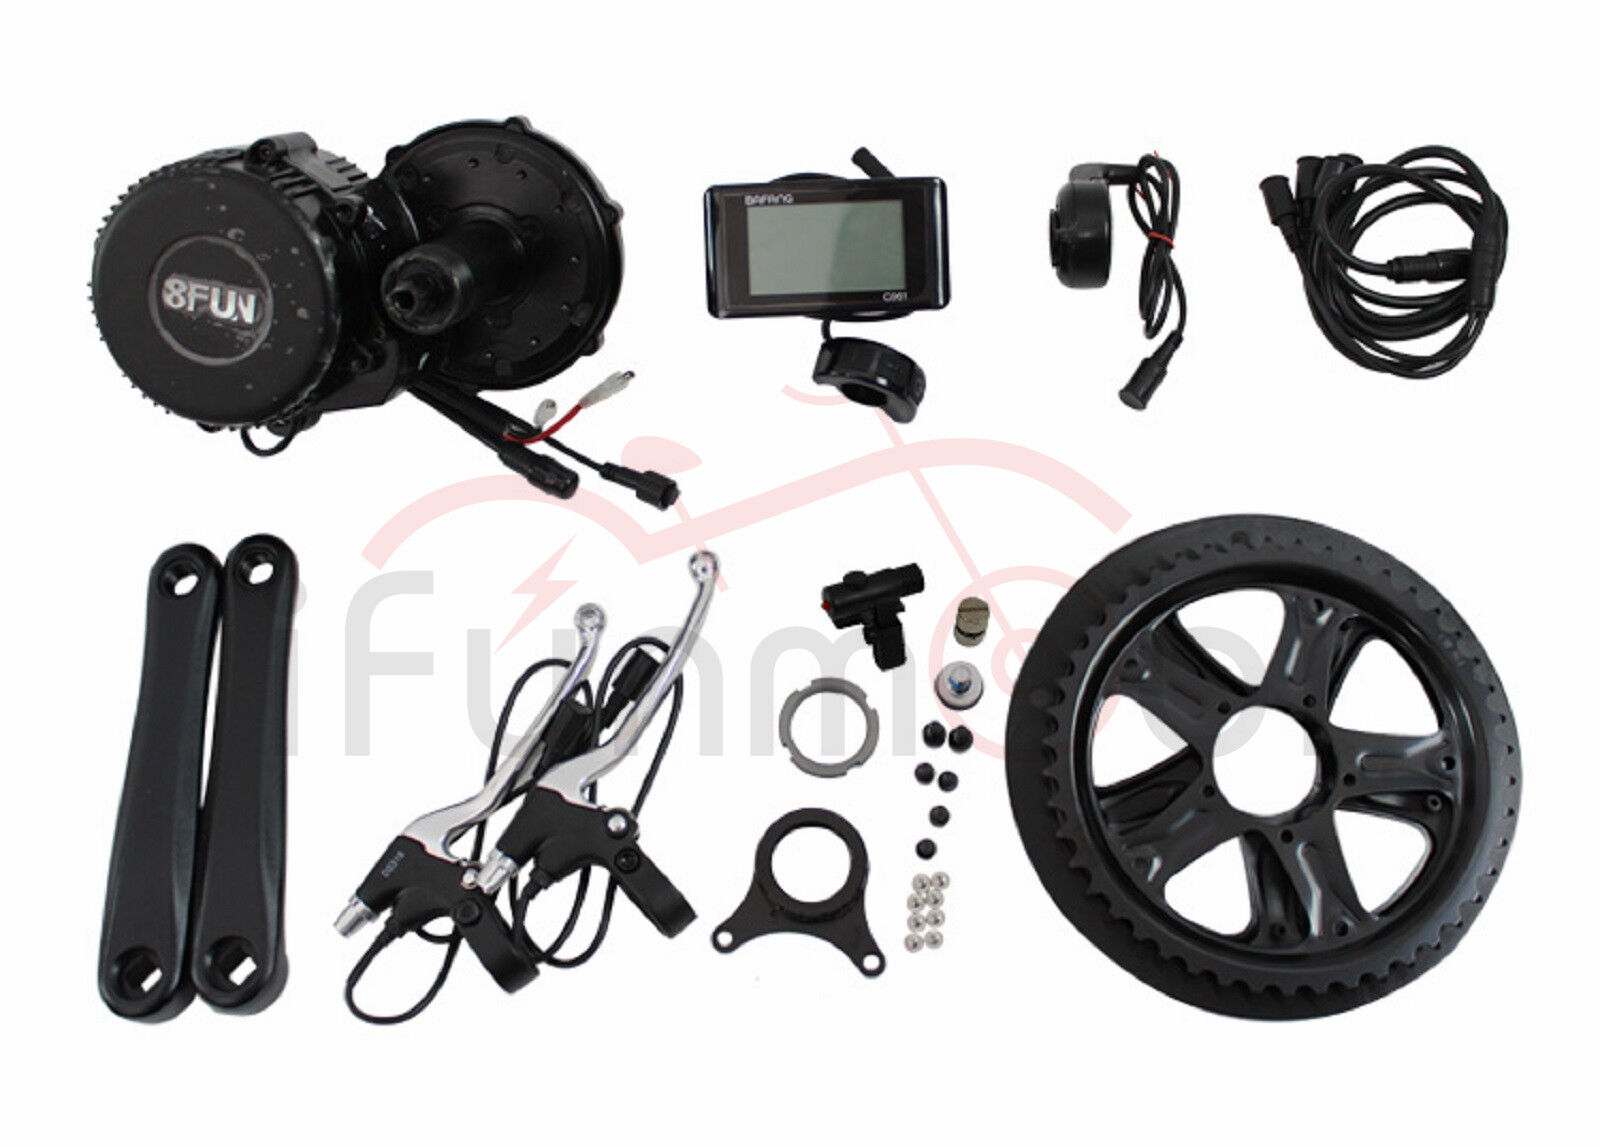 Bafang 8Fun BBS01 36V 48V 250W 350W  Mid-Drive Motor E-Bike Kits With LCD Panel  online outlet sale